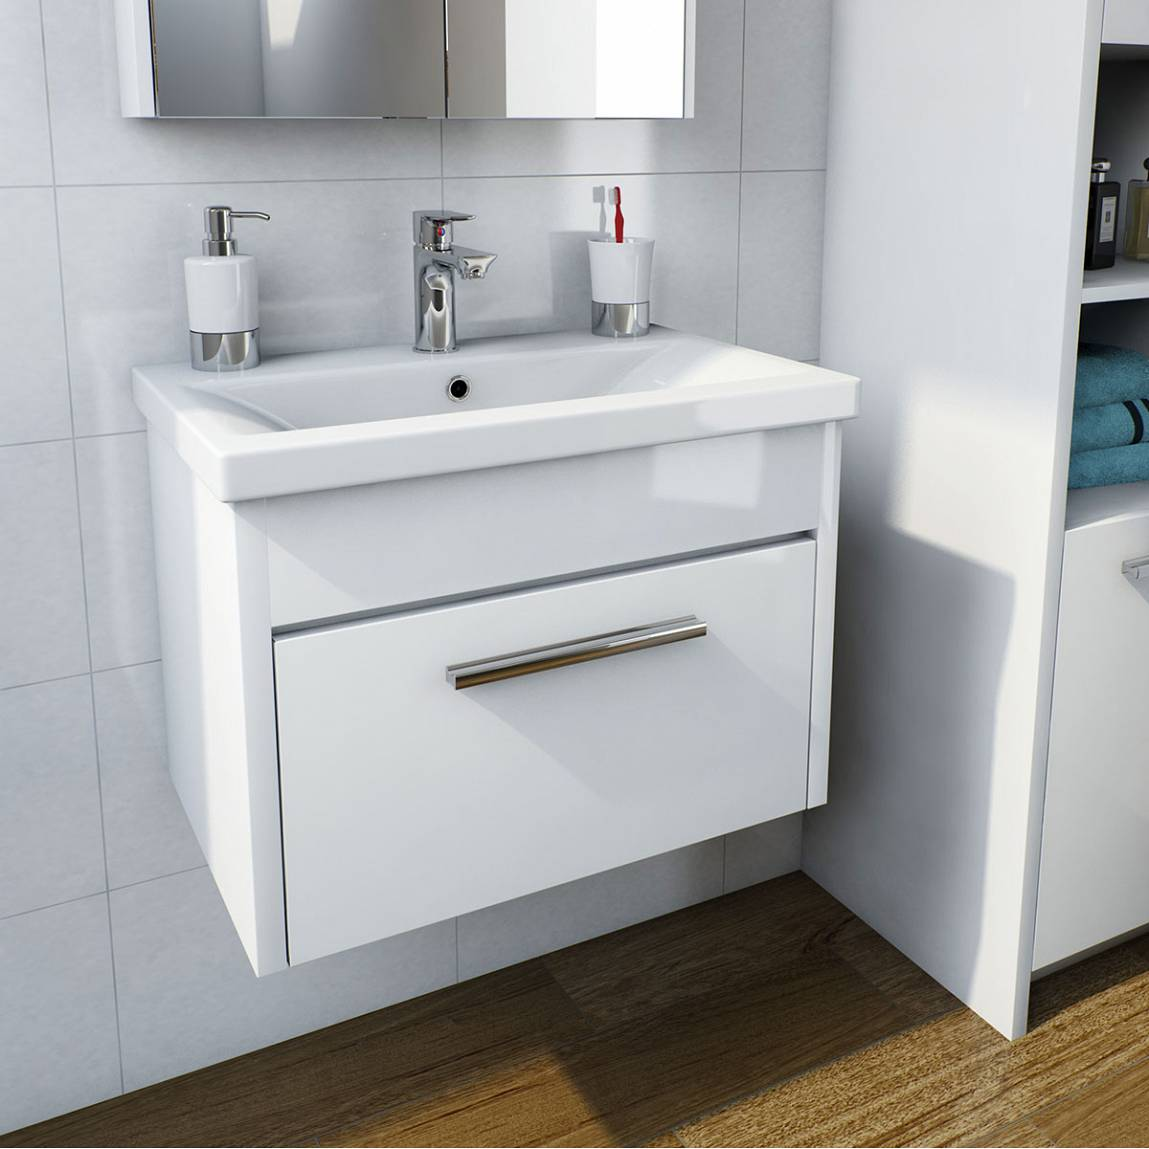 Bathroom furniture buying guide | VictoriaPlum.com